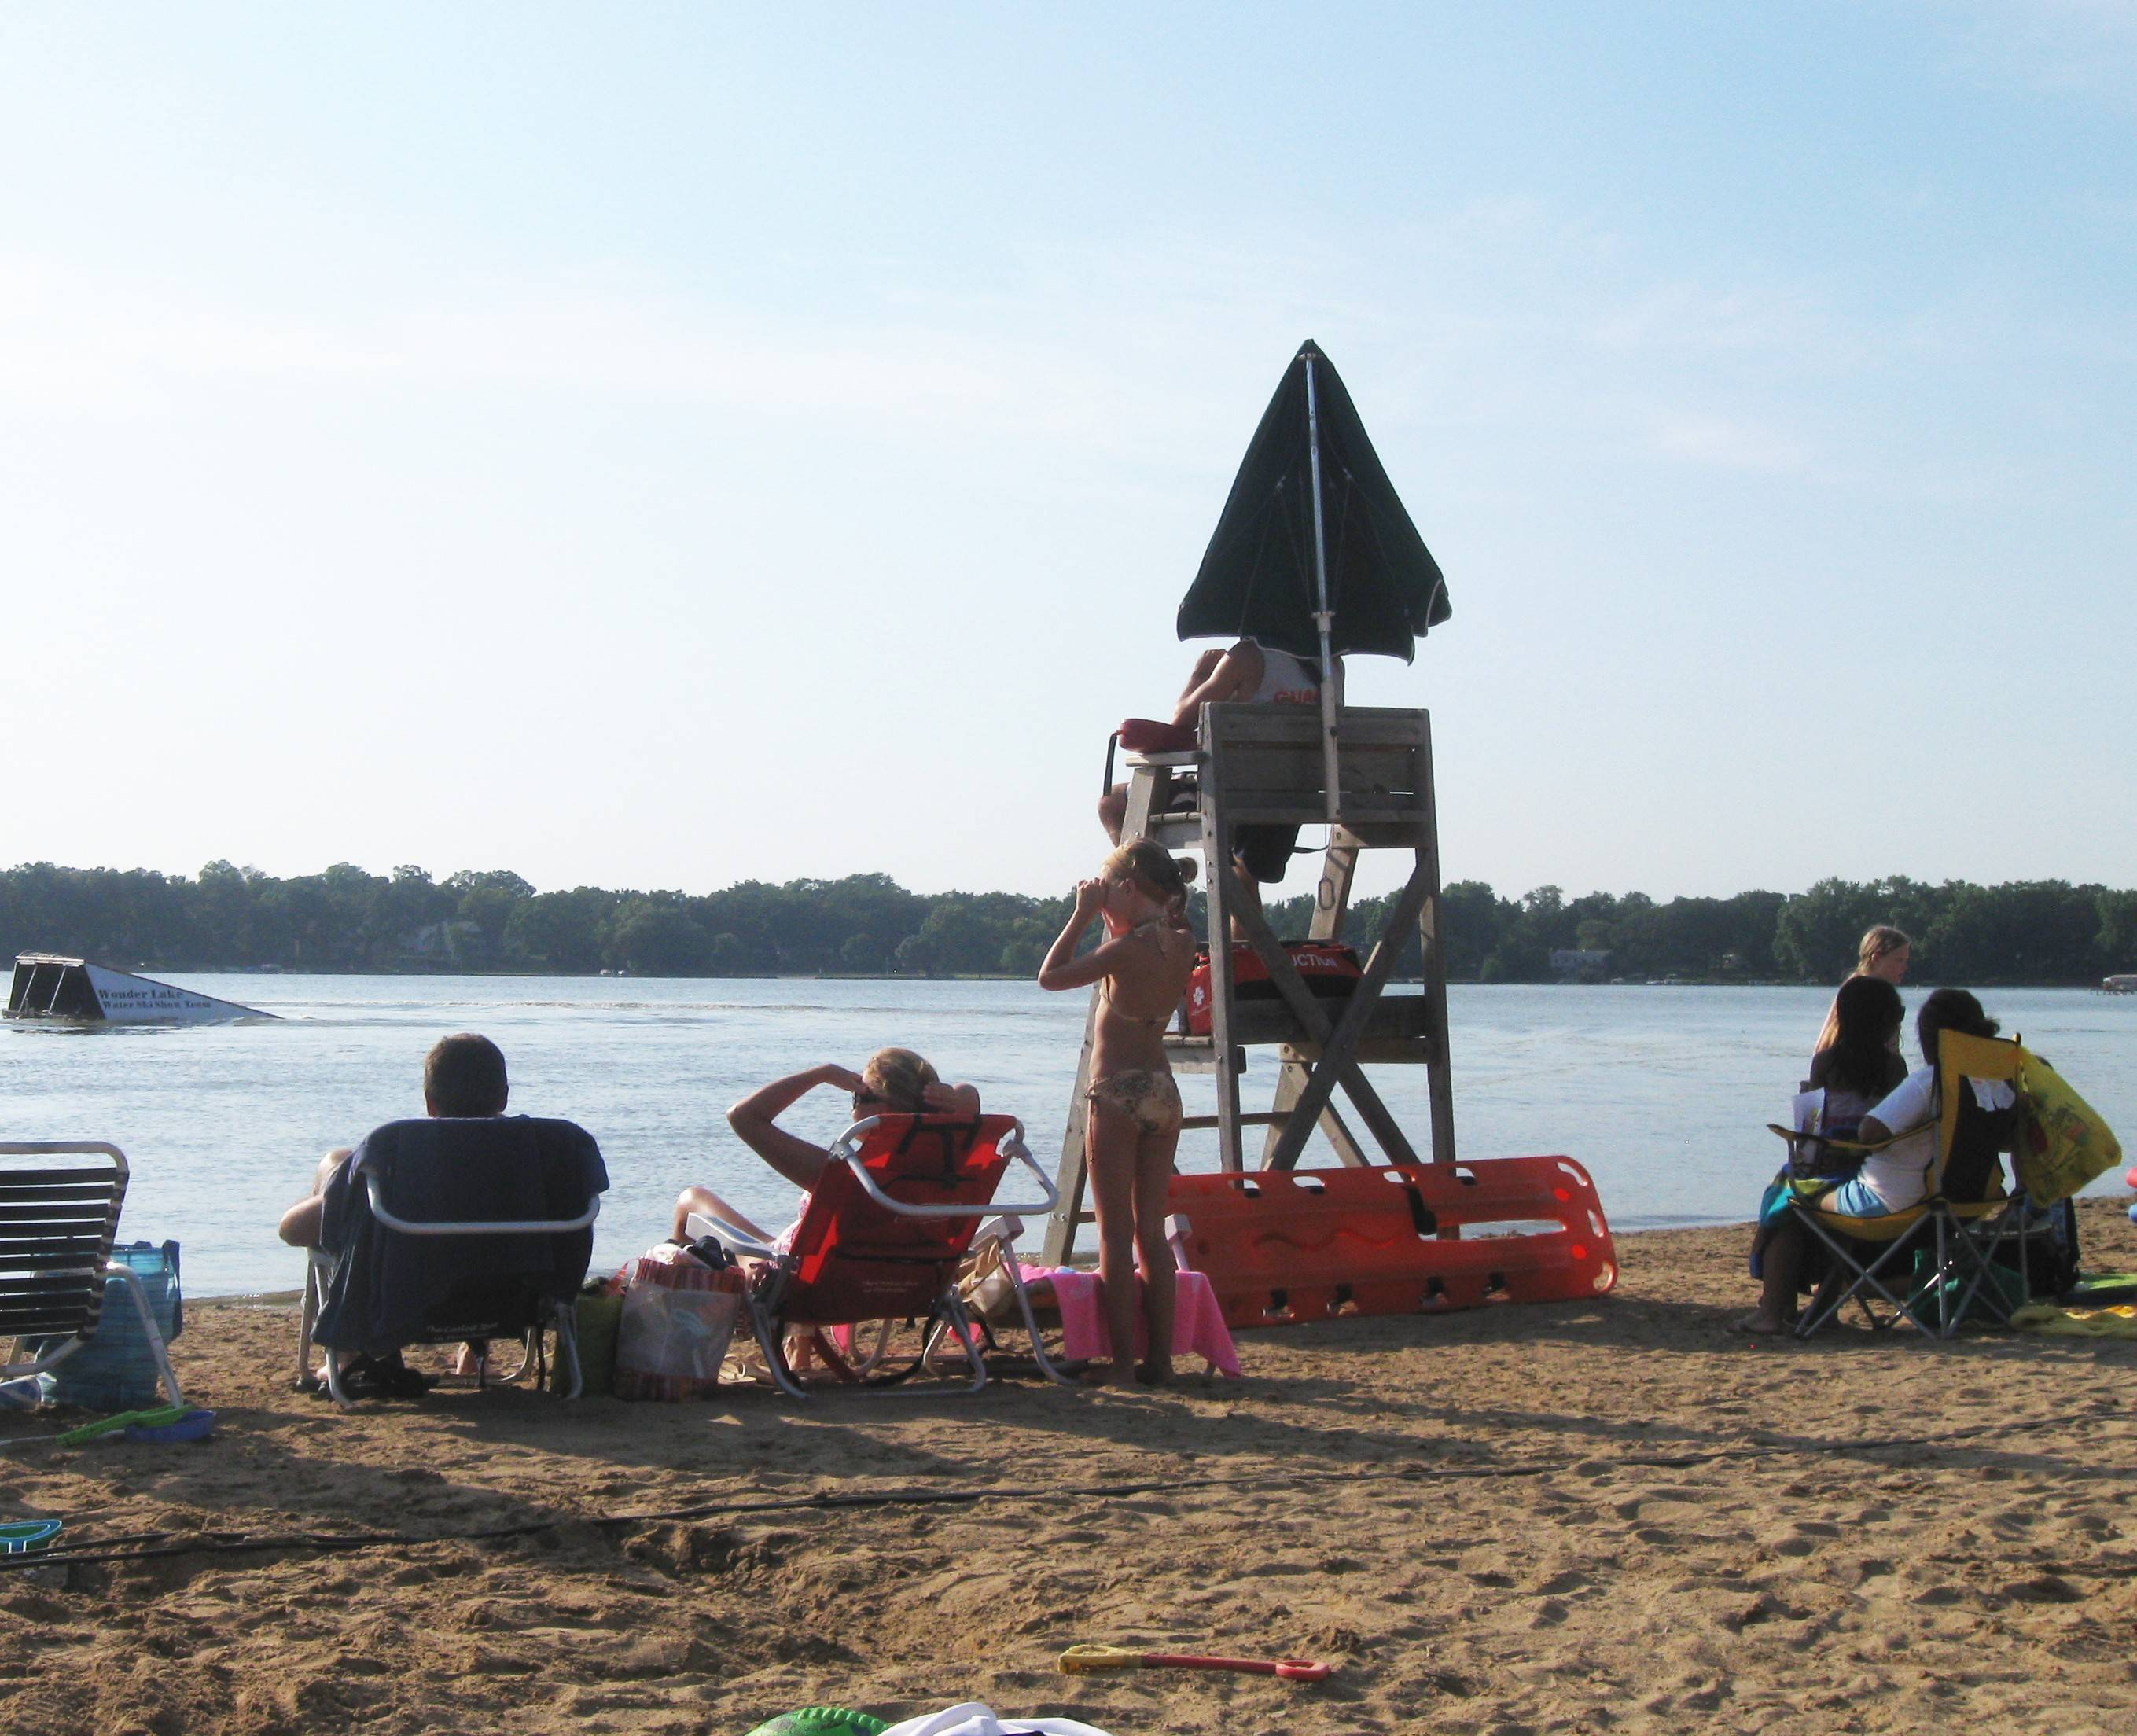 Showstopping stunts, on-water pyramids, and barefoot skiing by the Wonder Lake Water Ski Show Team are part of the fun at the free community picnic June 28 at Diamond Lake Beach in Mundelein.